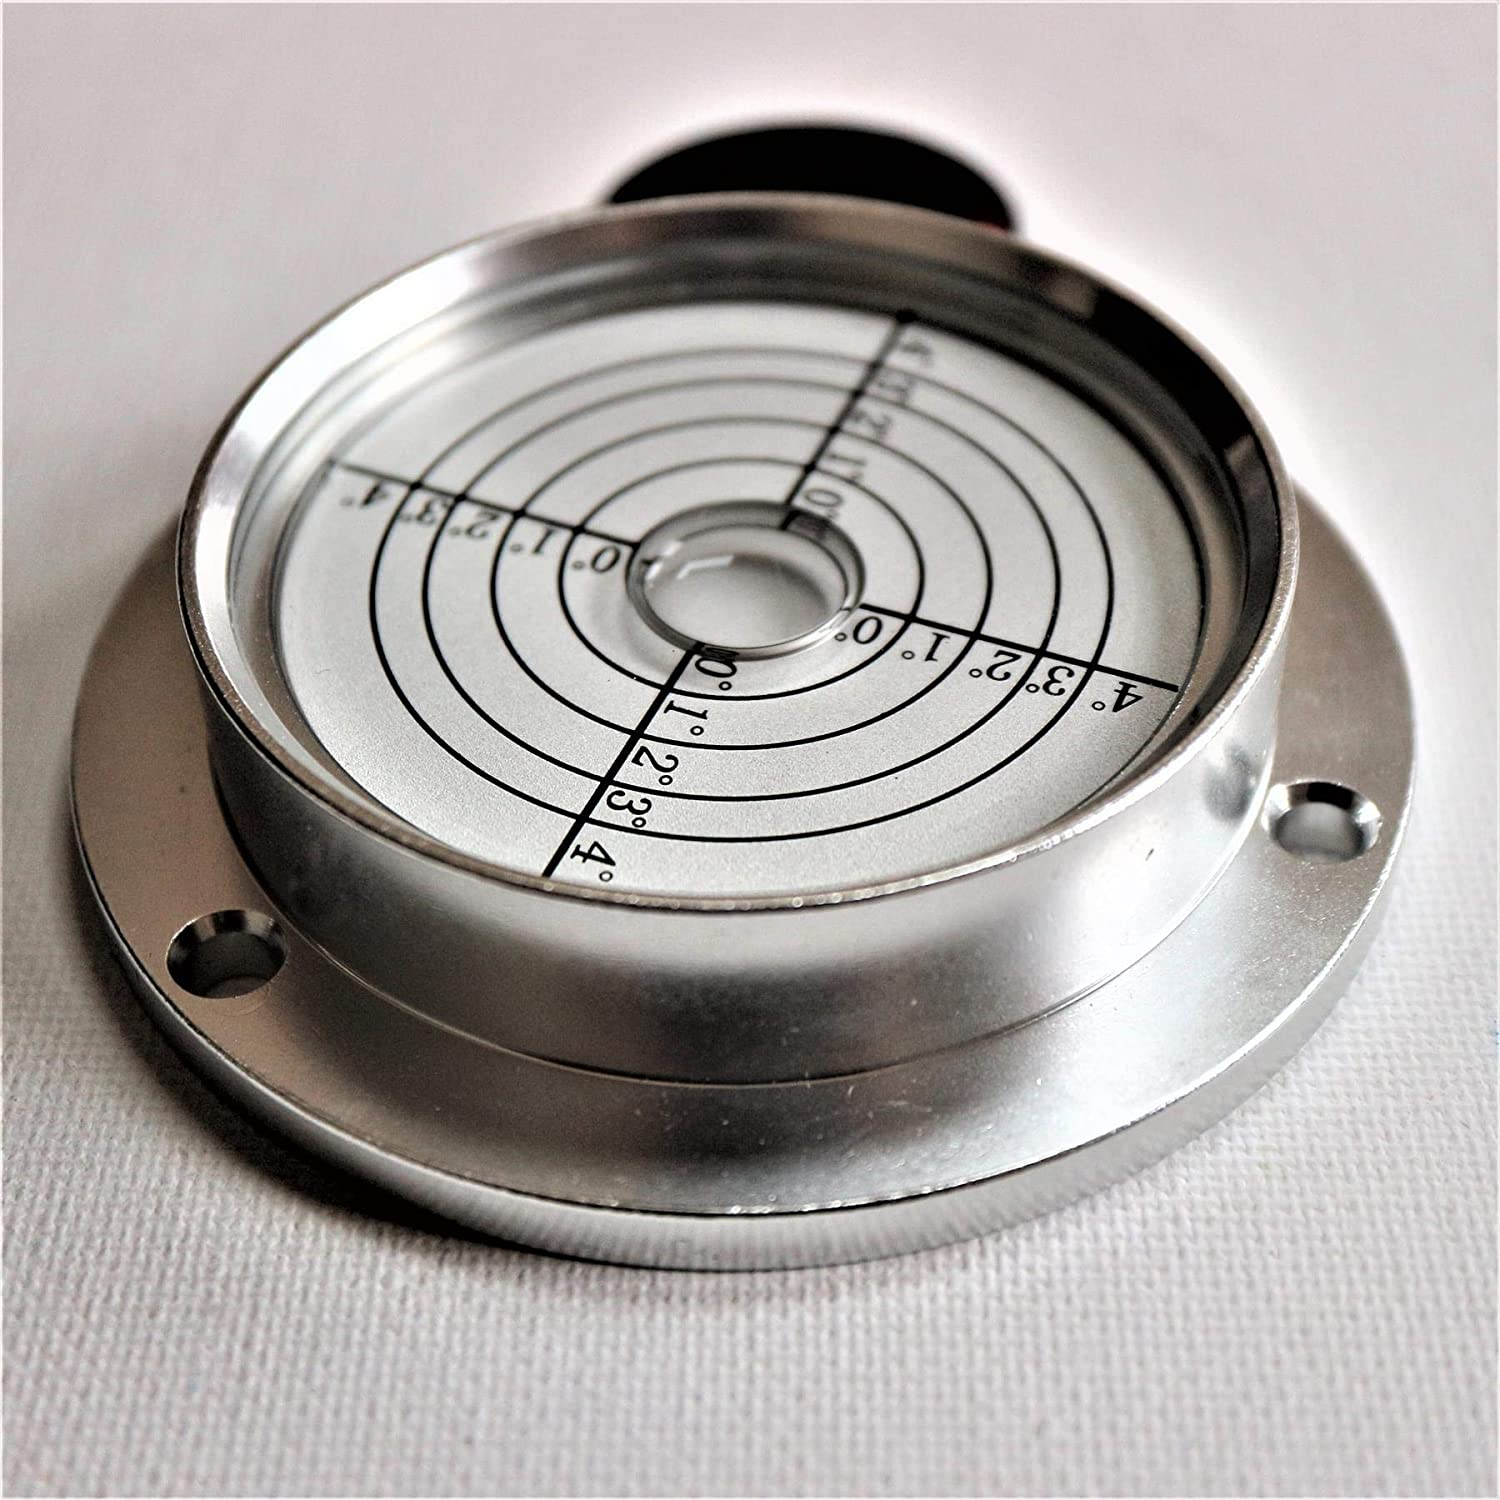 Large Flanged Metal Circular Angle Spirit Bubble Degree Level 71mm Diameter with Degree Marking, 2 51/64